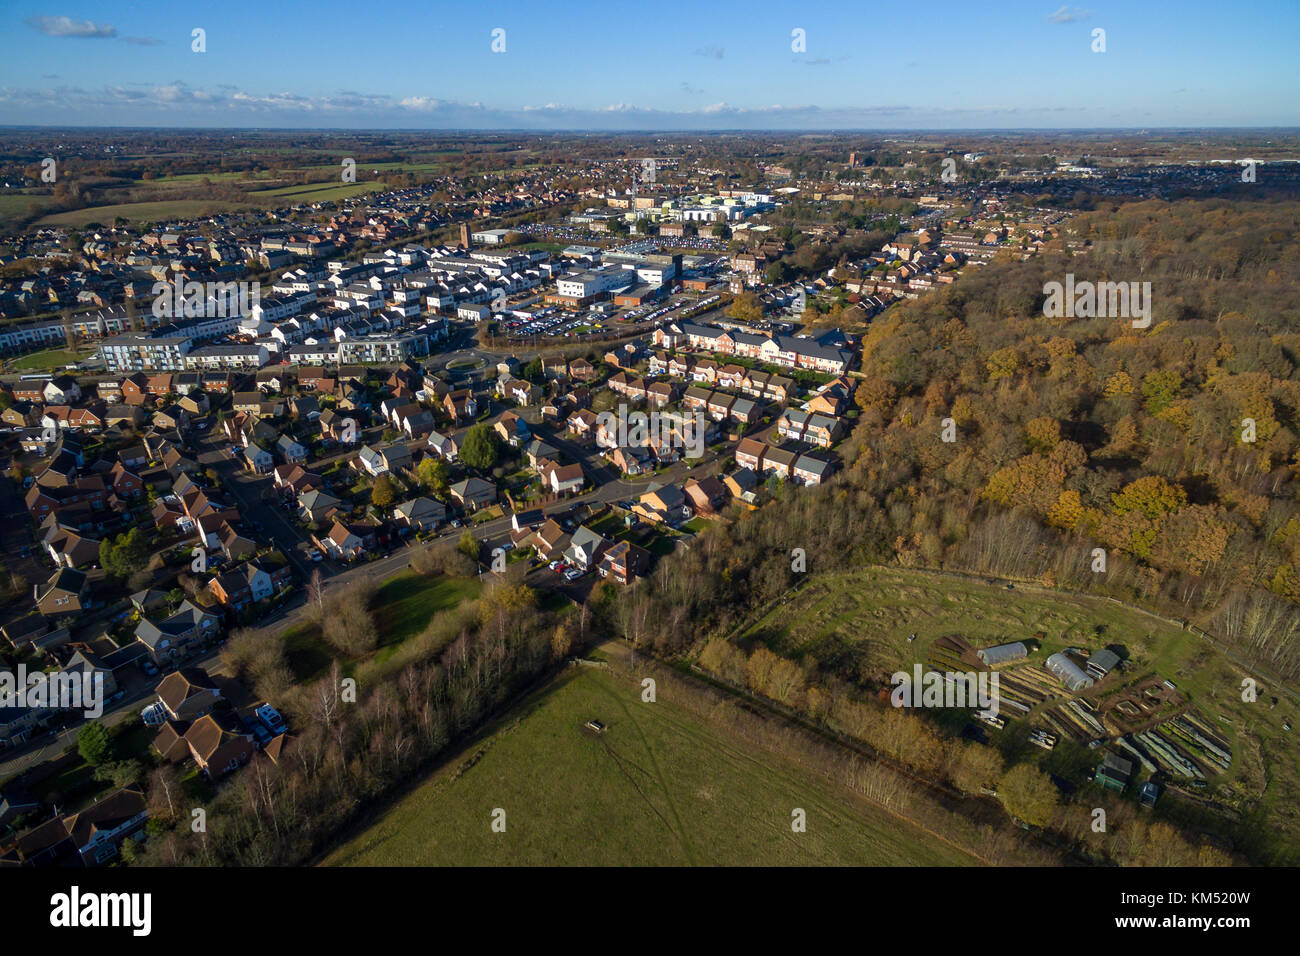 Aerial view of Colchester General Hospital and site of former Severalls hospital in North Colchester Essex, UK - Stock Image